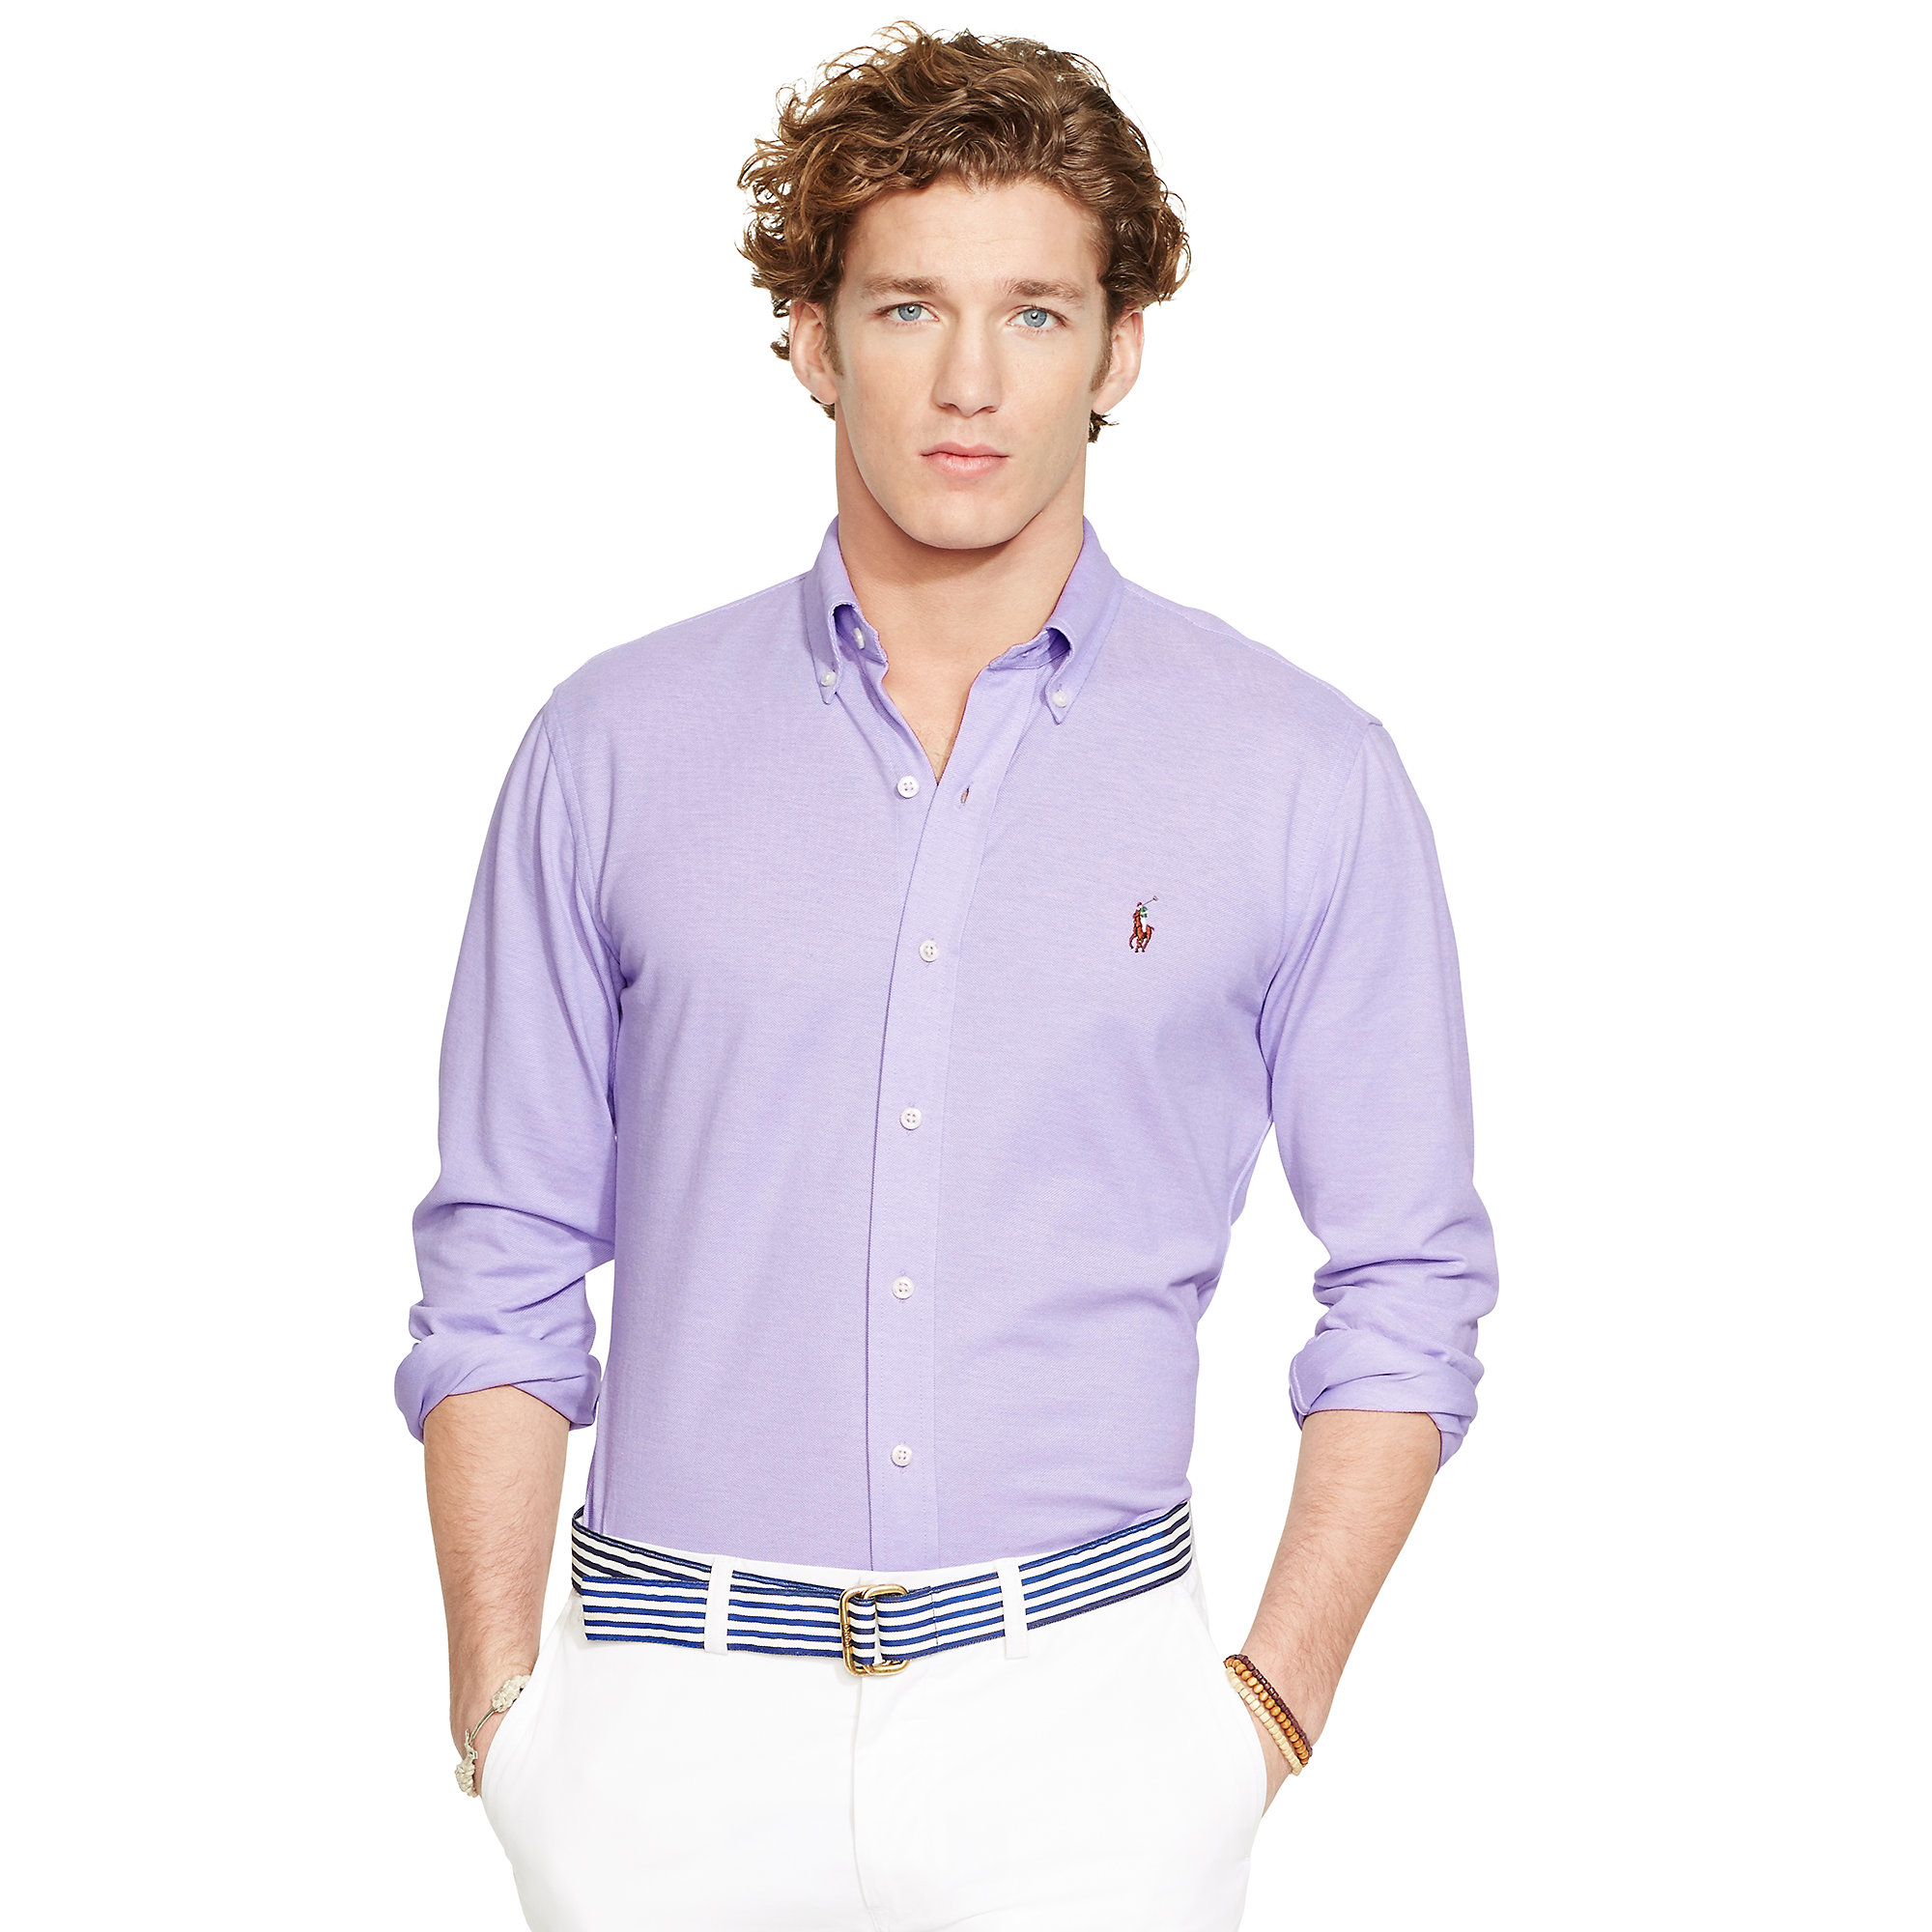 8a0c4d8e30f83 Lyst - Polo Ralph Lauren Knit Oxford Shirt in Purple for Men